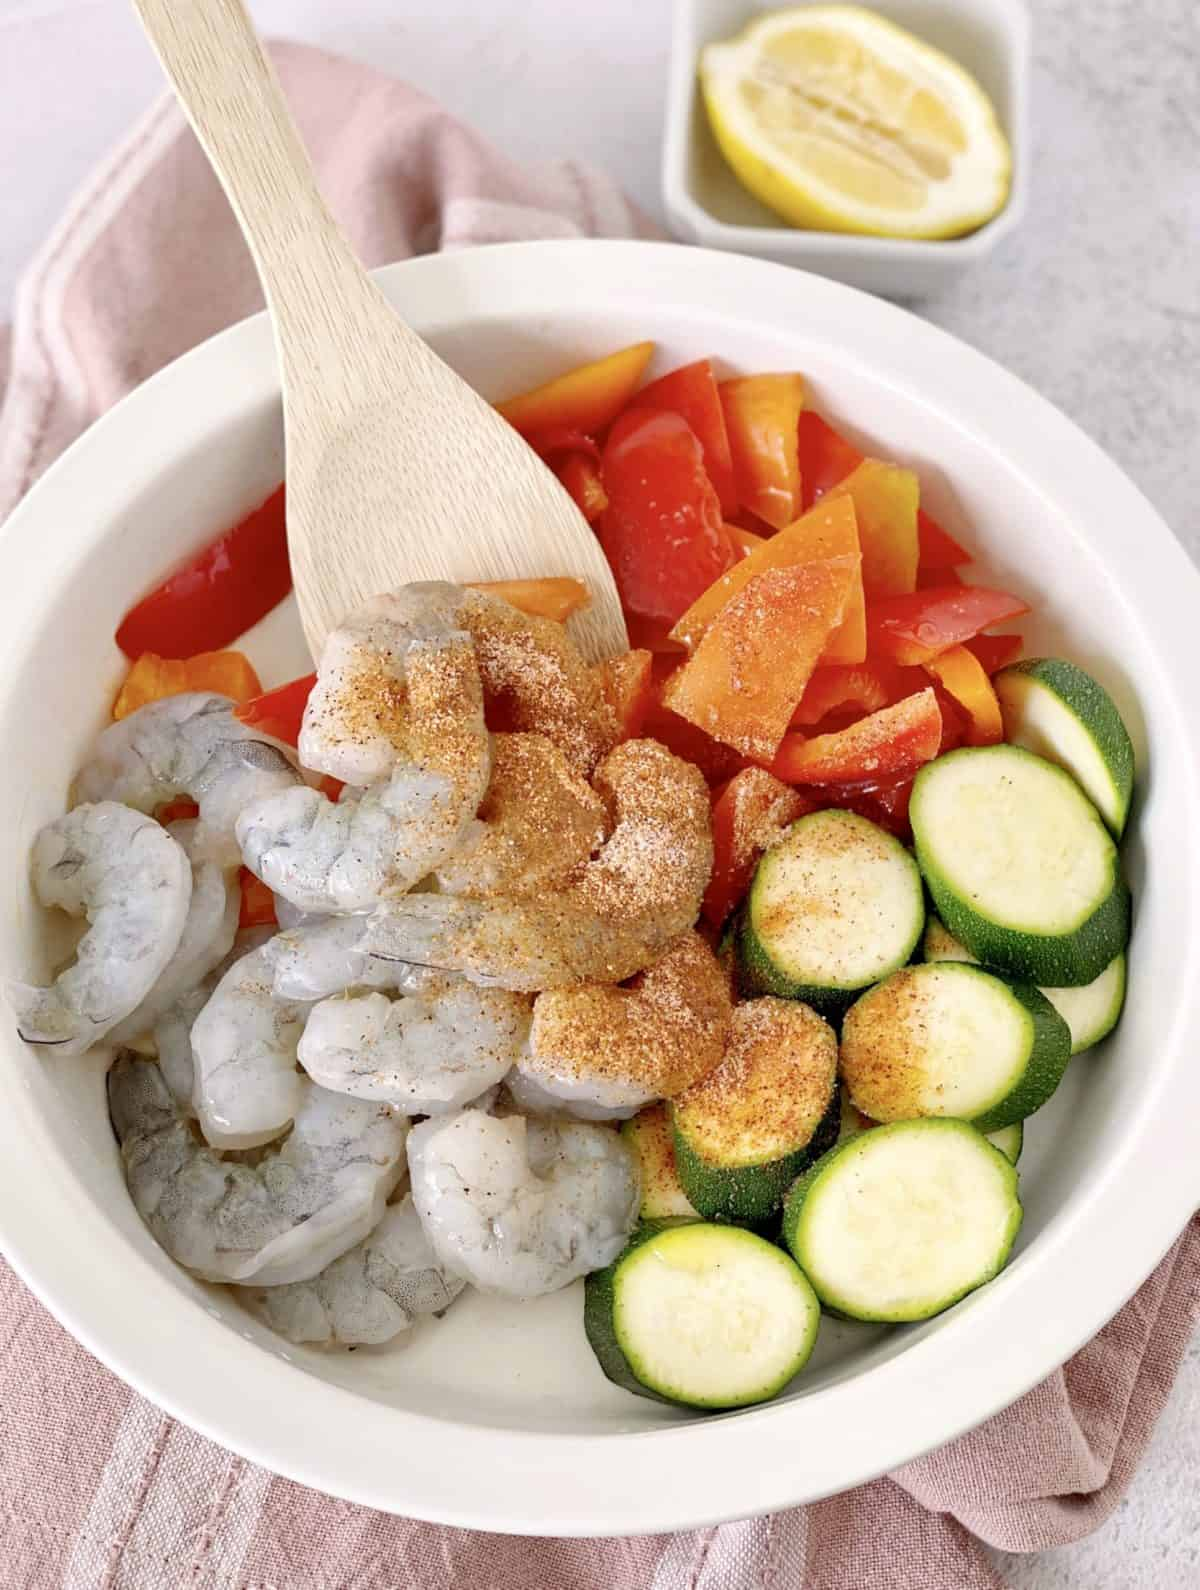 bowl of shrimp and vegetables with cajun seasoning